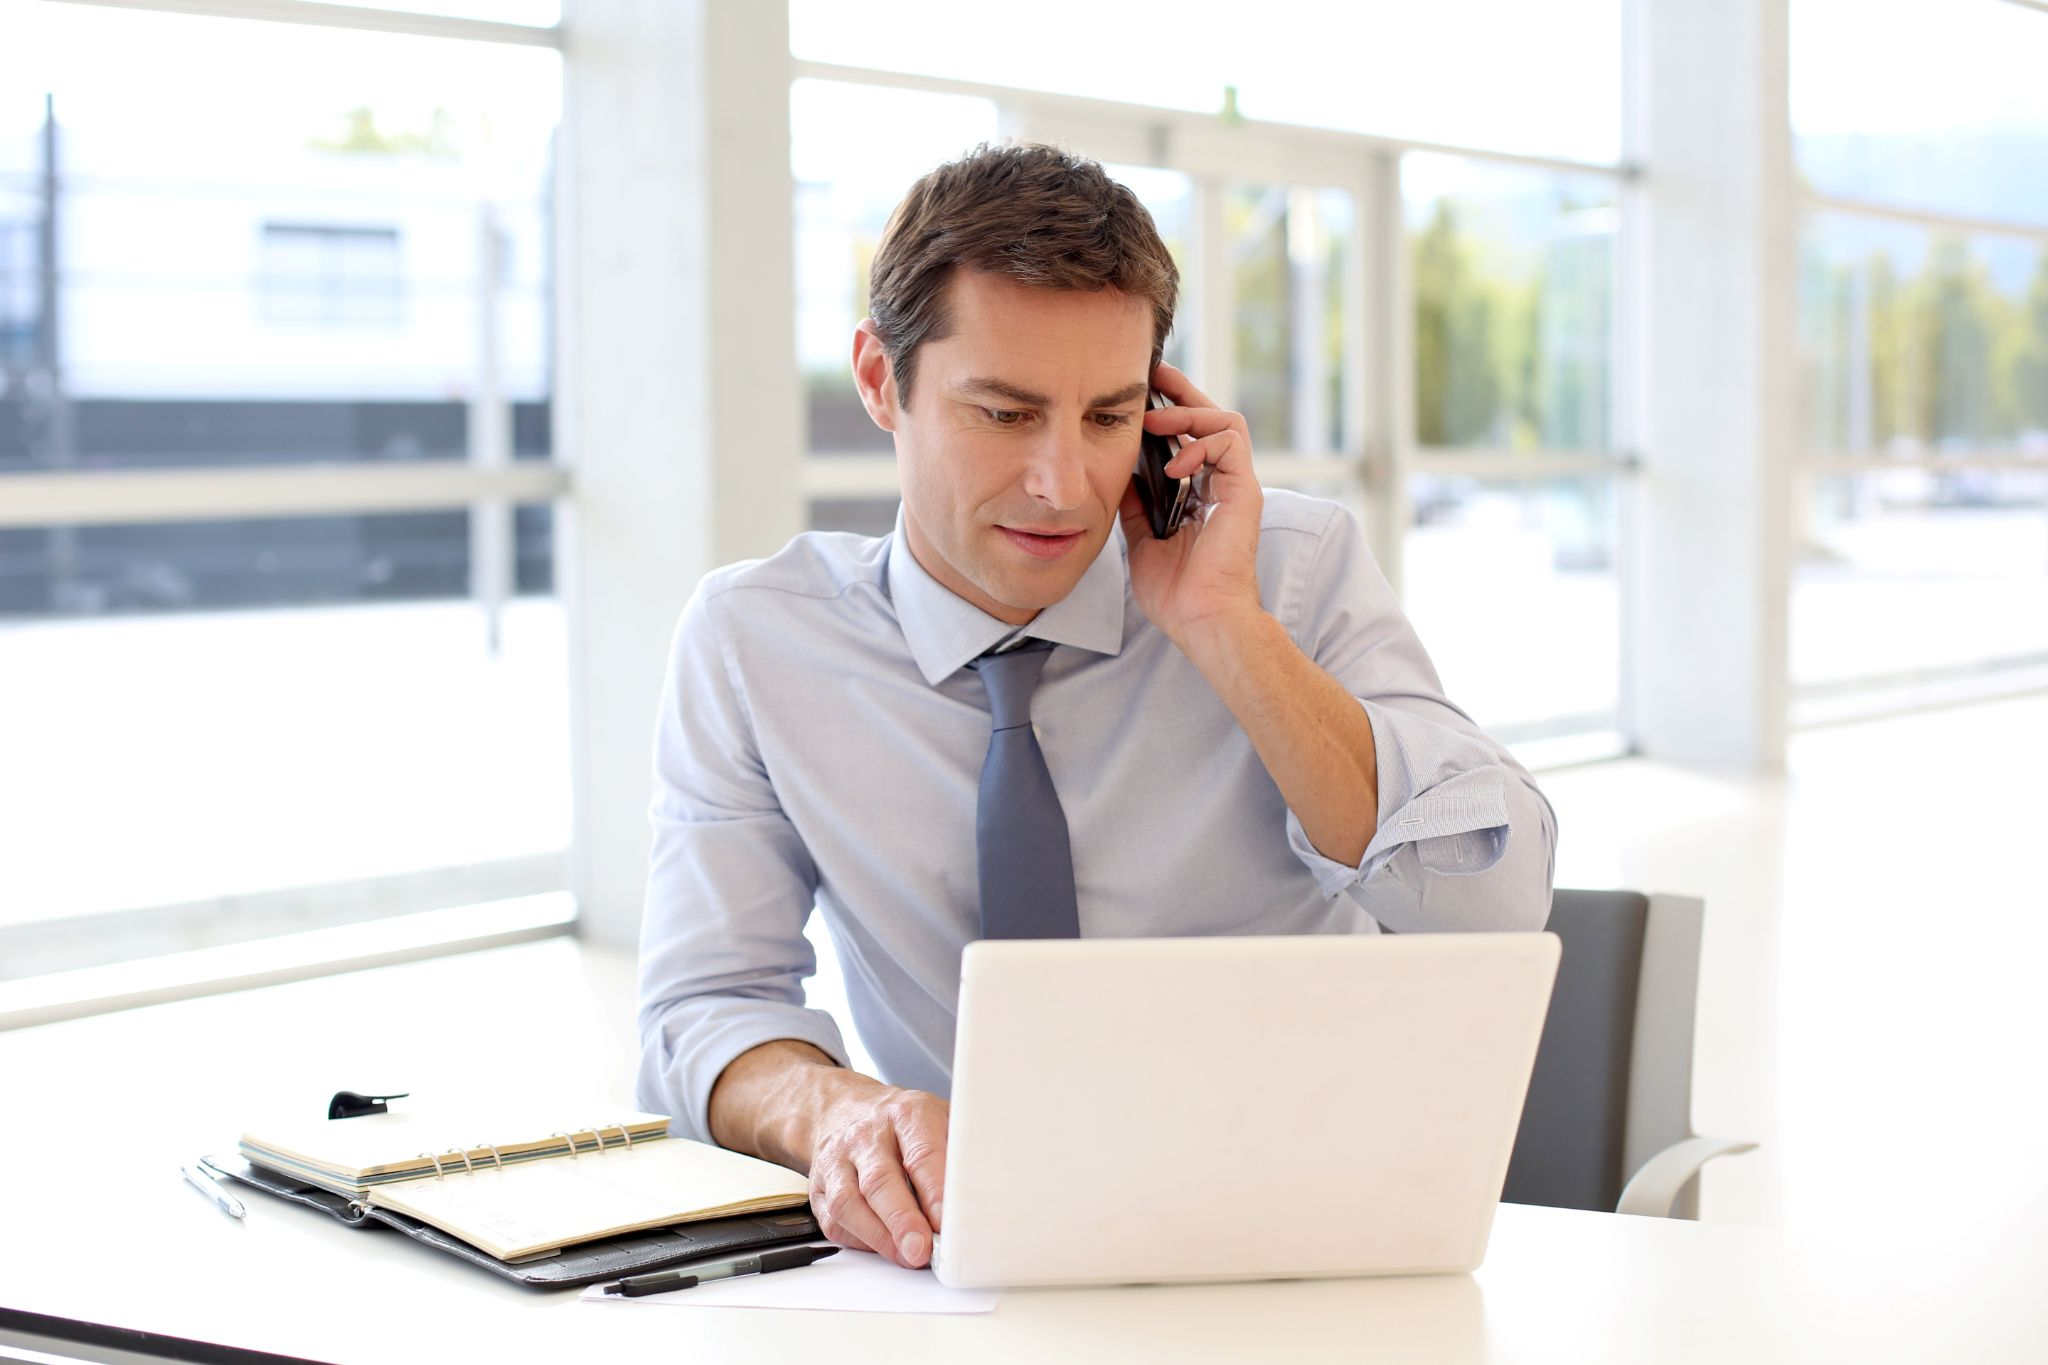 A business owner calling his insurance provider to update his policy